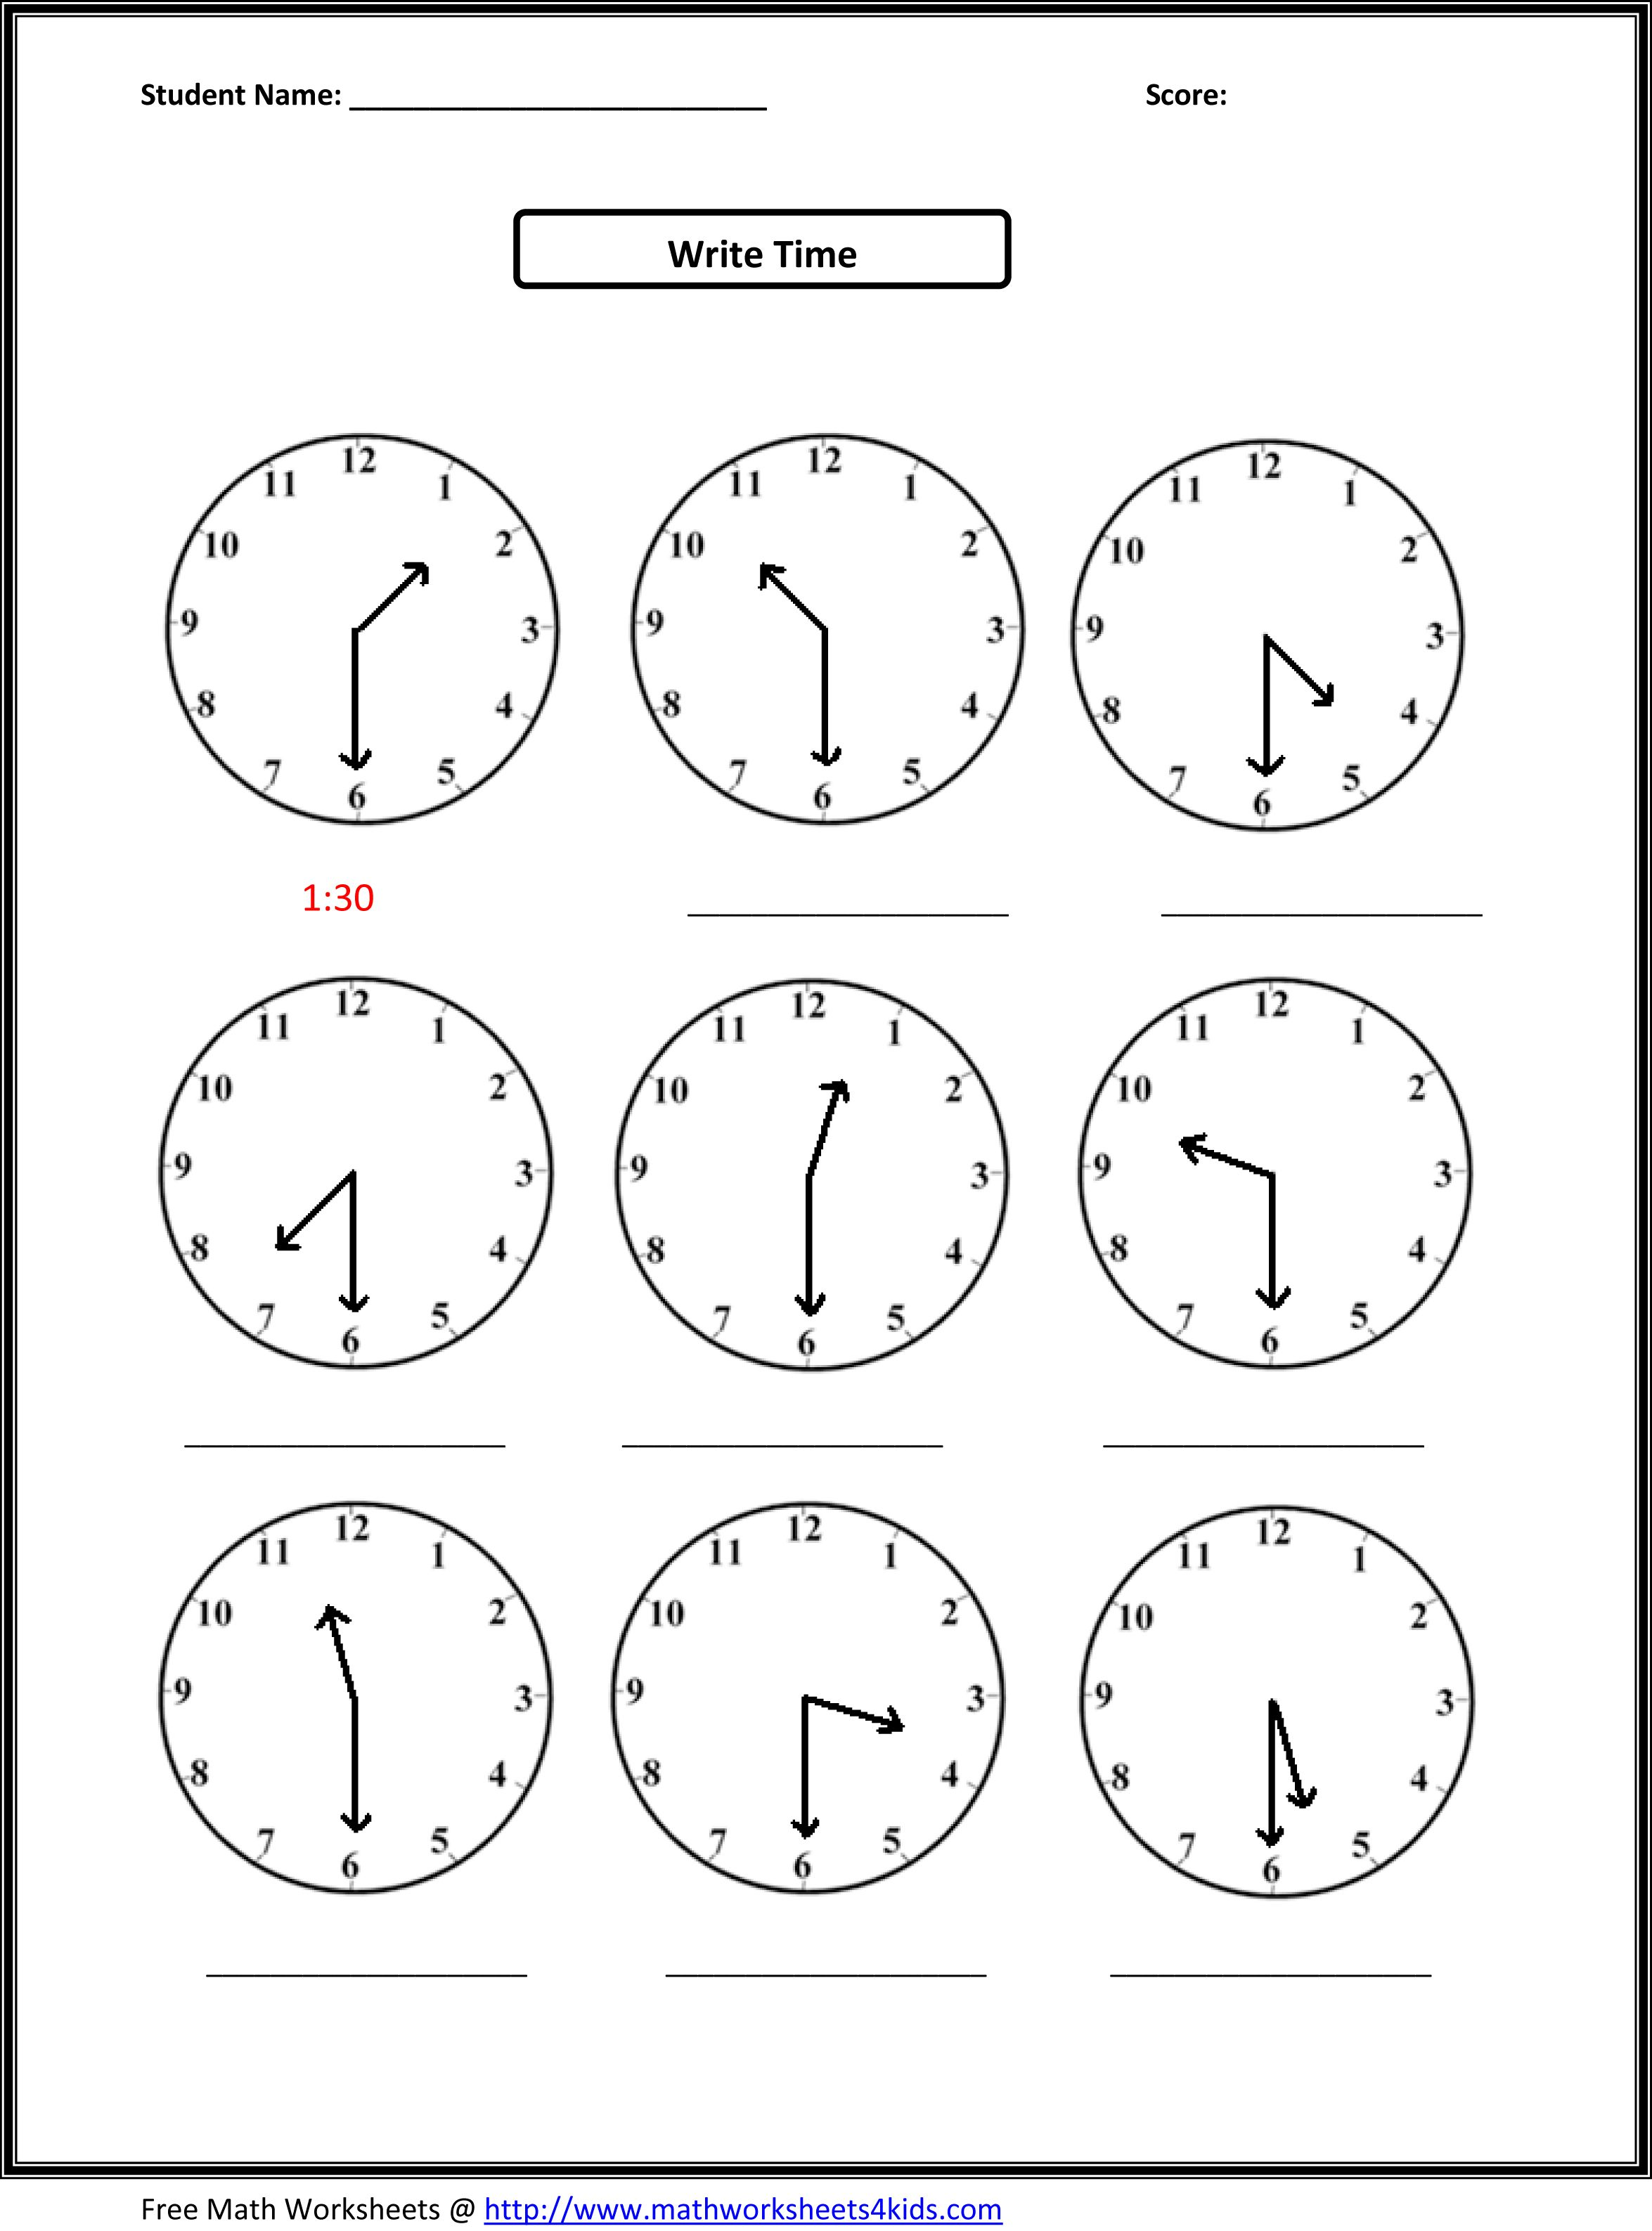 Weirdmailus  Fascinating Worksheet On Time For Grade   Reocurent With Exquisite Free Printable Telling Time Worksheets Nd Grade  Reocurent With Amusing Worksheet On Adverbs For Grade  Also Maths Worksheets Year  In Addition Punctuation Practice Worksheets High School And Locus Worksheets As Well As Grade One Writing Worksheets Additionally Subtraction Worksheet Grade  From Reocurentcom With Weirdmailus  Exquisite Worksheet On Time For Grade   Reocurent With Amusing Free Printable Telling Time Worksheets Nd Grade  Reocurent And Fascinating Worksheet On Adverbs For Grade  Also Maths Worksheets Year  In Addition Punctuation Practice Worksheets High School From Reocurentcom